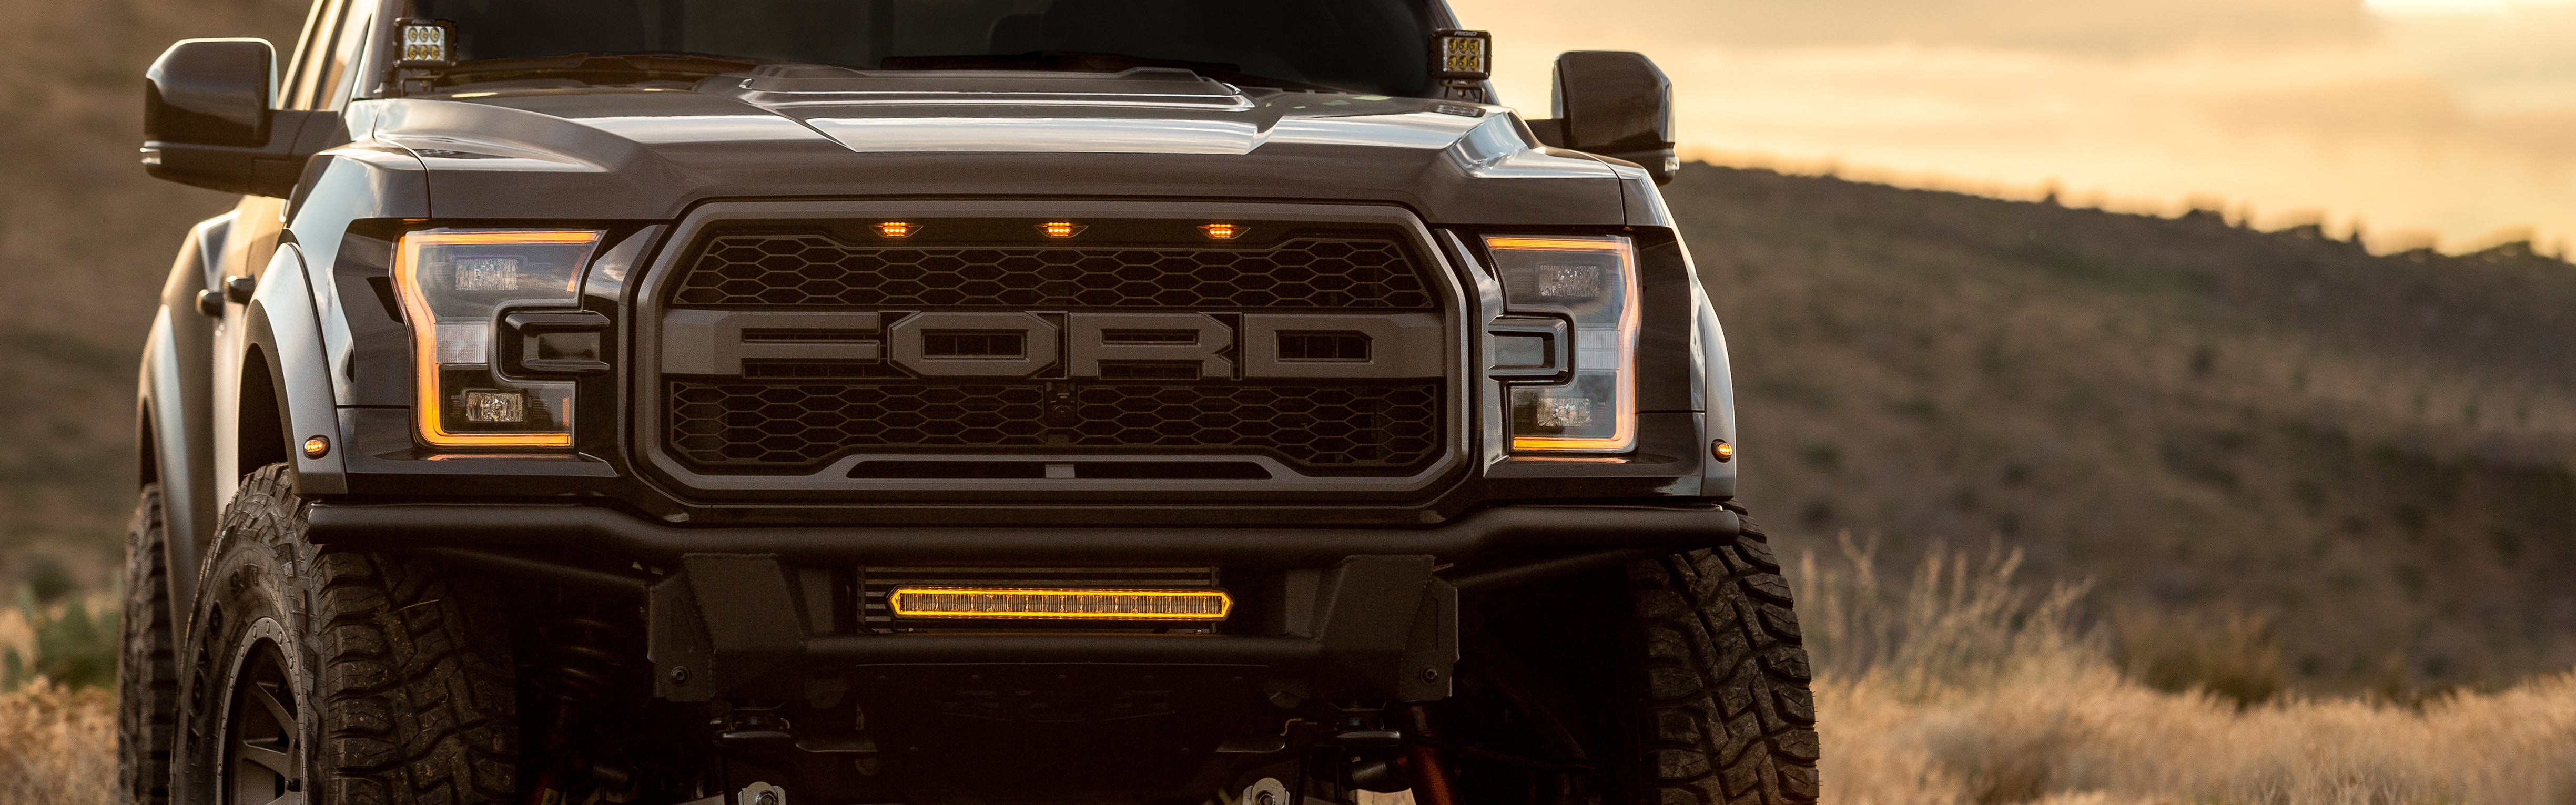 RIGID SR-L SERIES LIGHT BAR NOW AVAILABLE